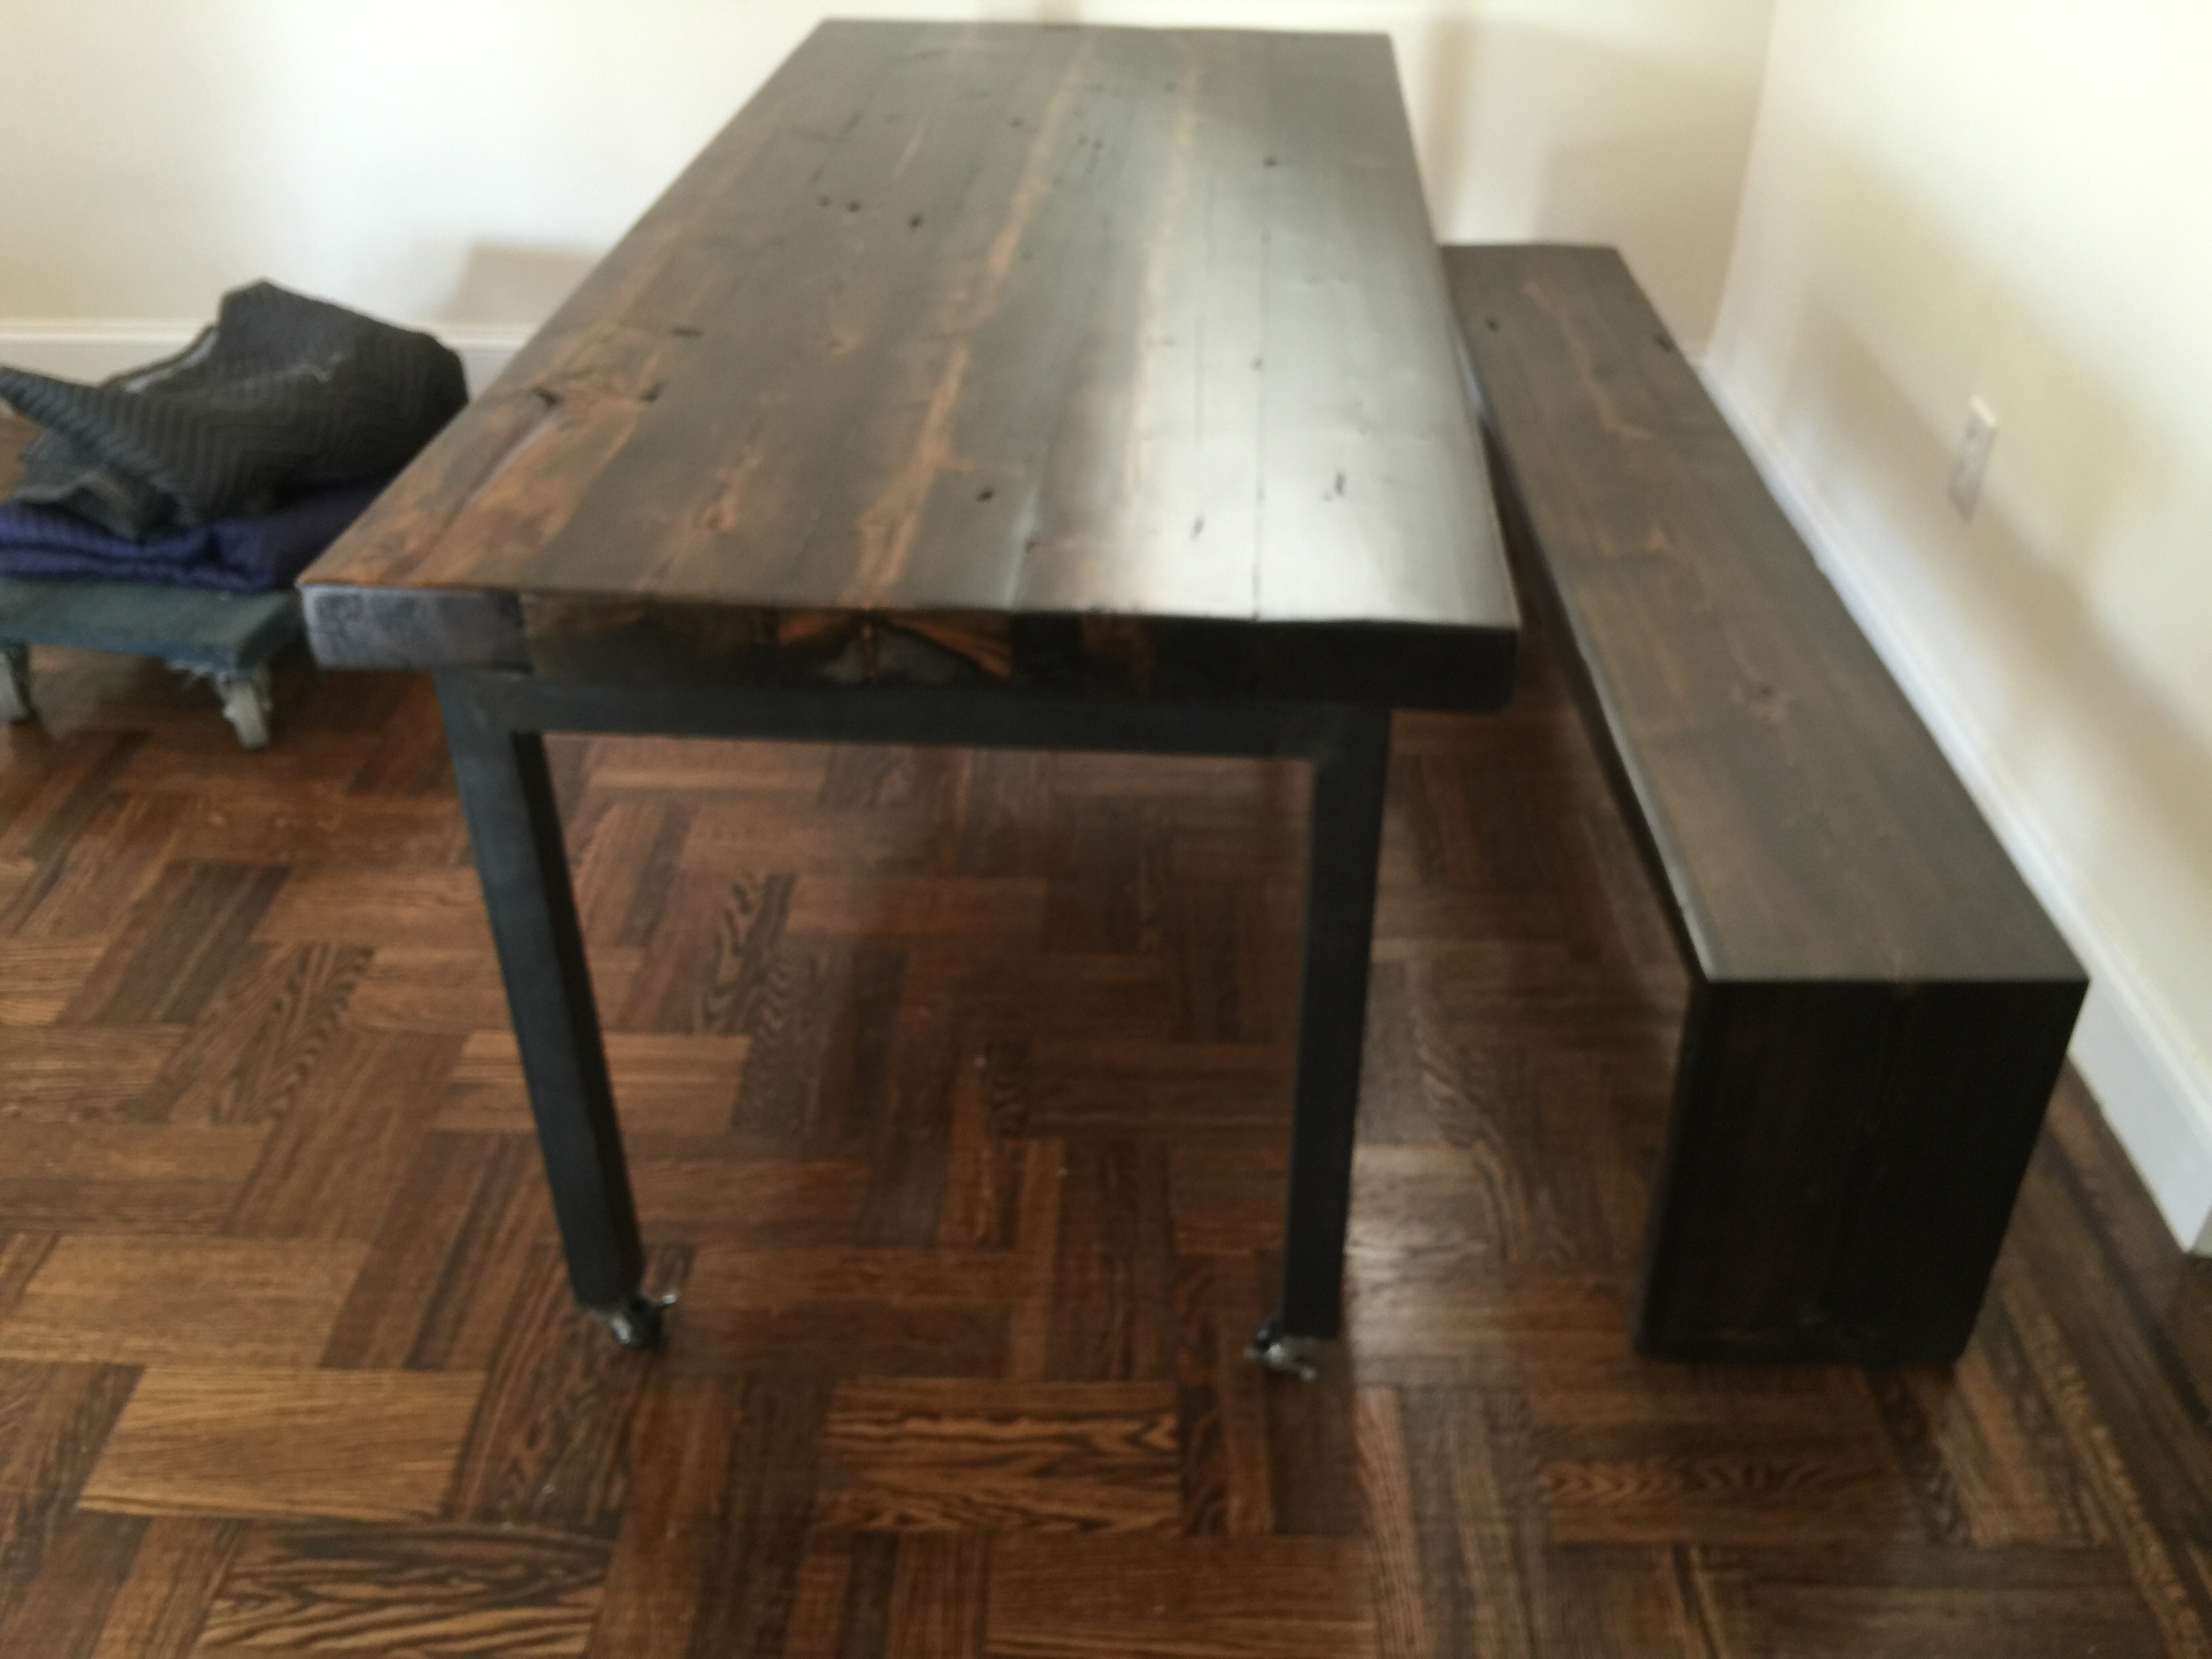 Rustic, ebony-stained table and bench